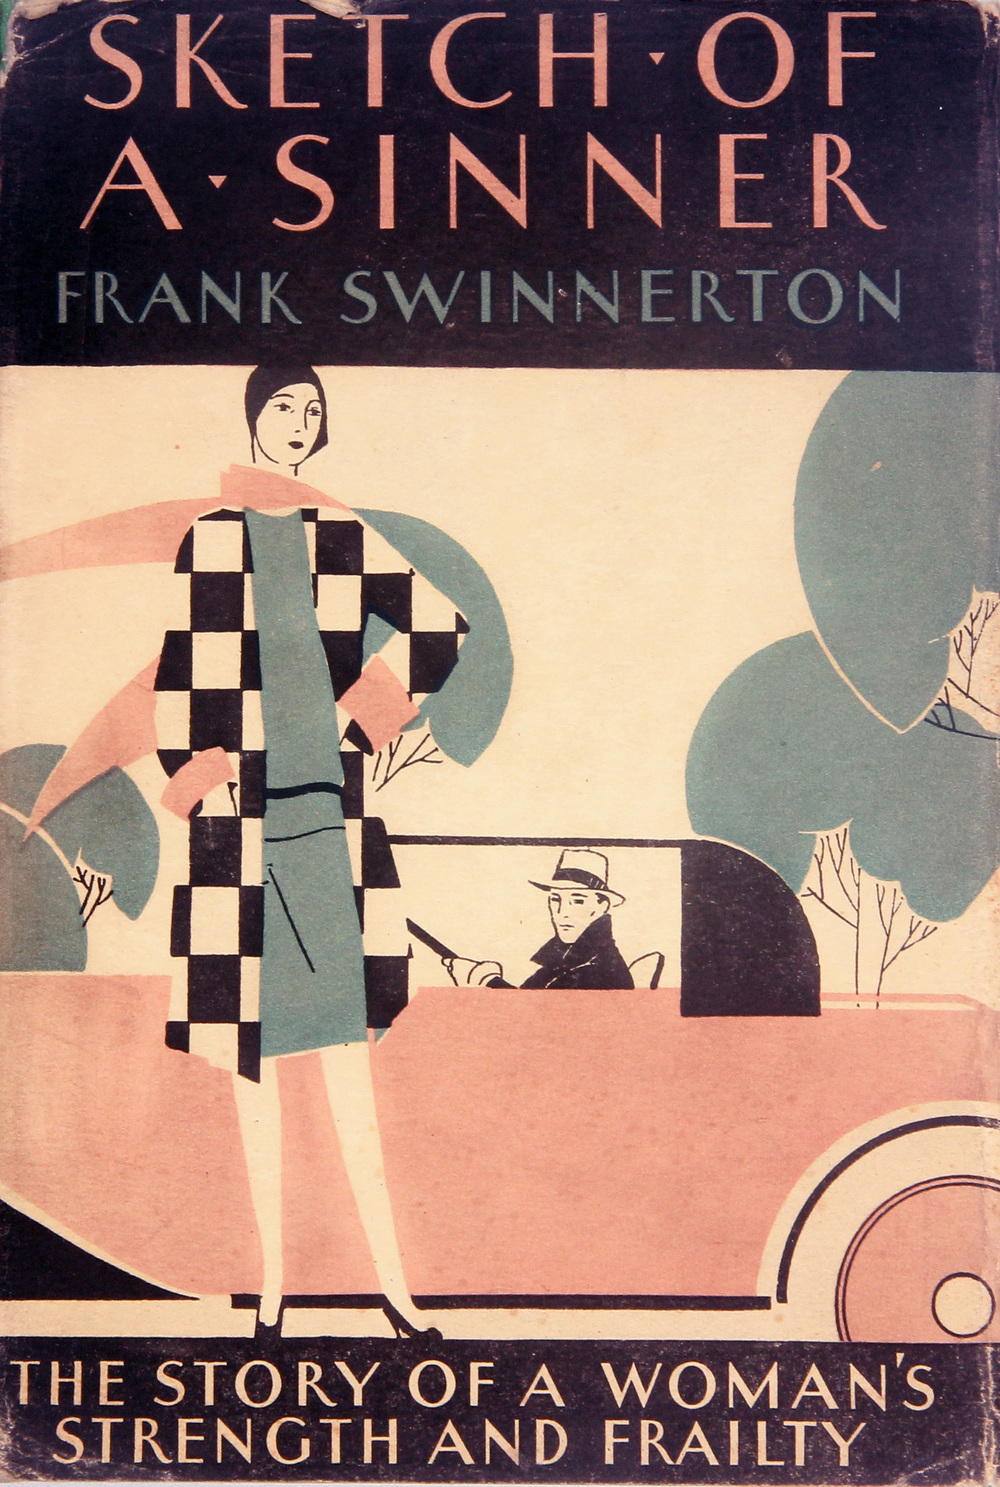 FRANK SWINNERTON, SKETCH OF A SINNER (MORRIS OF PARIS DUST JACKET) First American Edition. 1929. $75